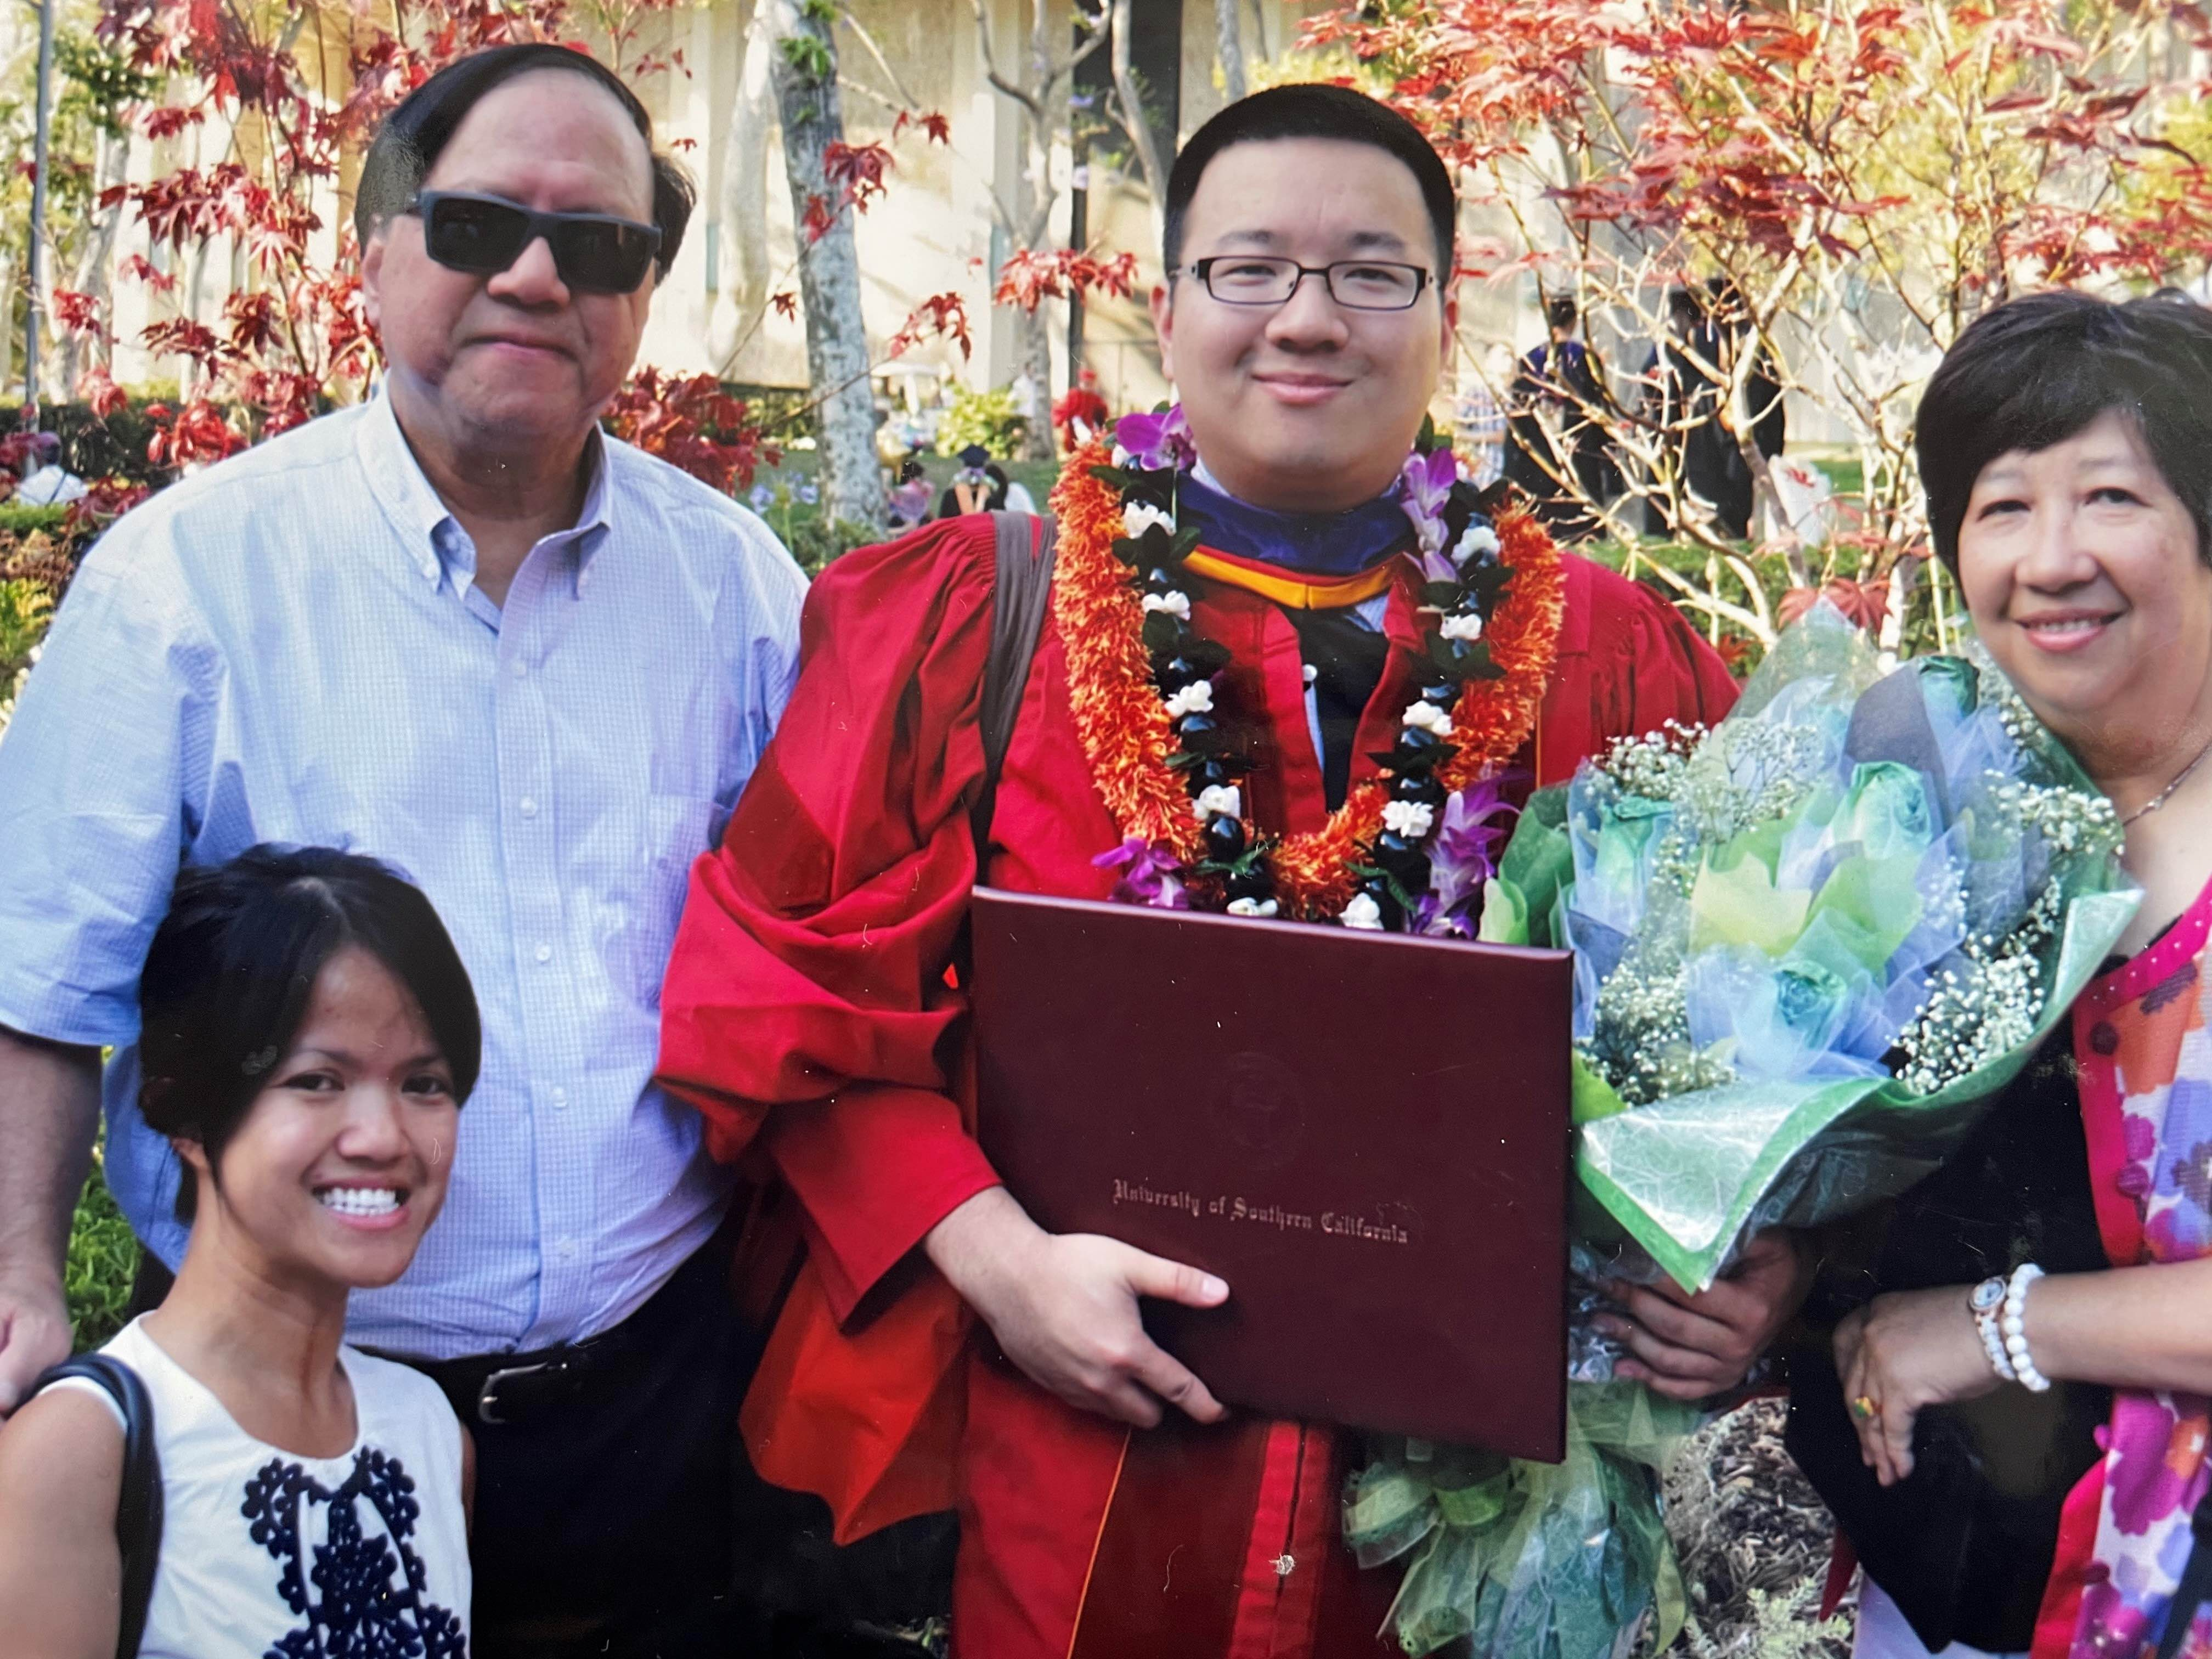 A family photo at my brother's graduation.